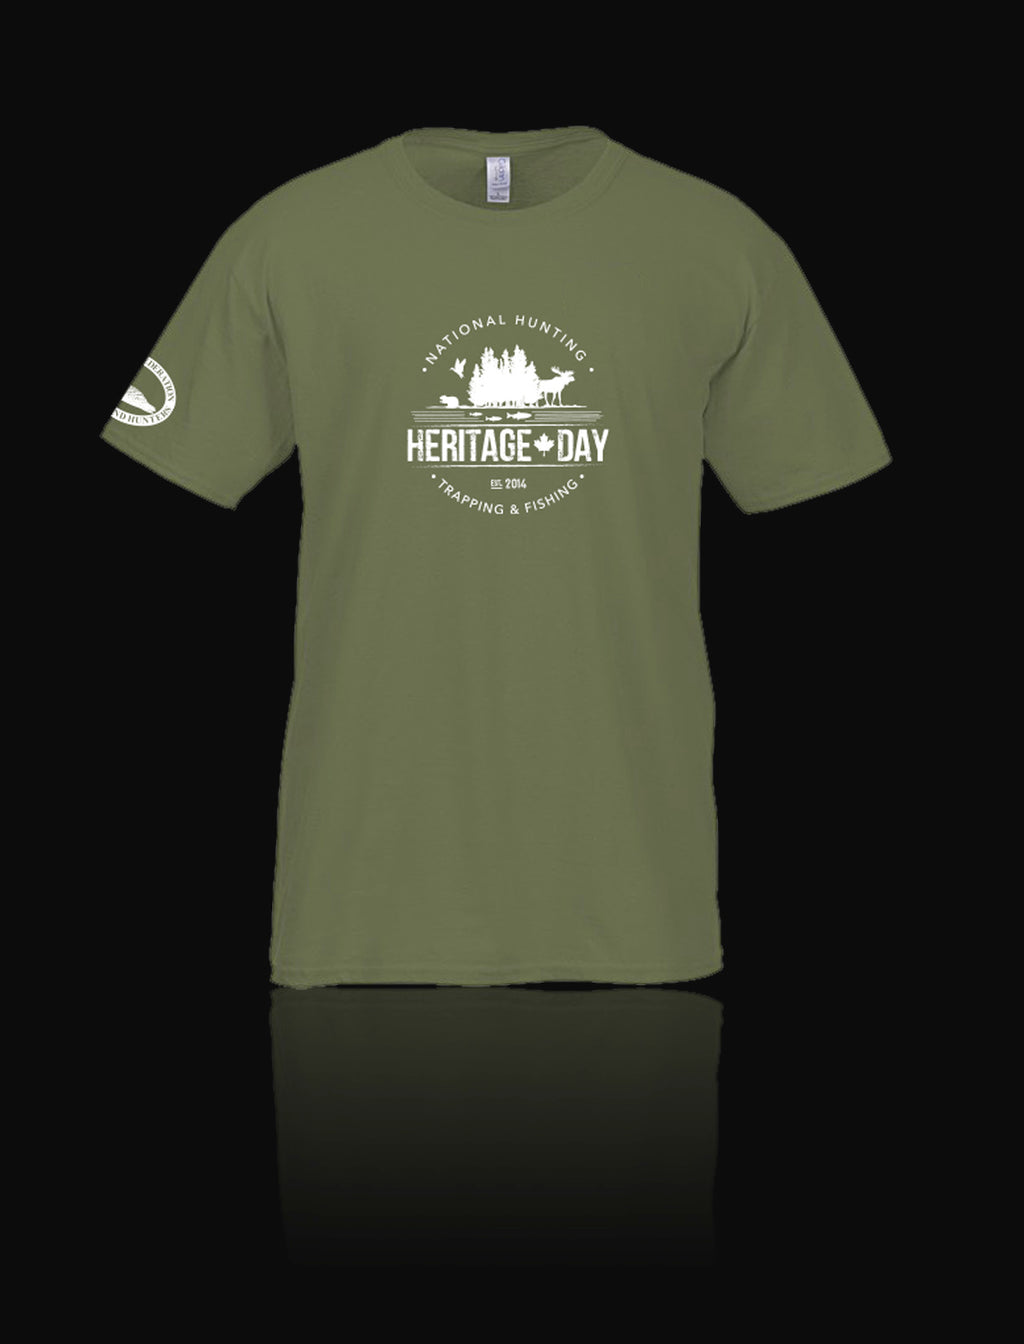 Heritage Day t-shirt - green (small only)